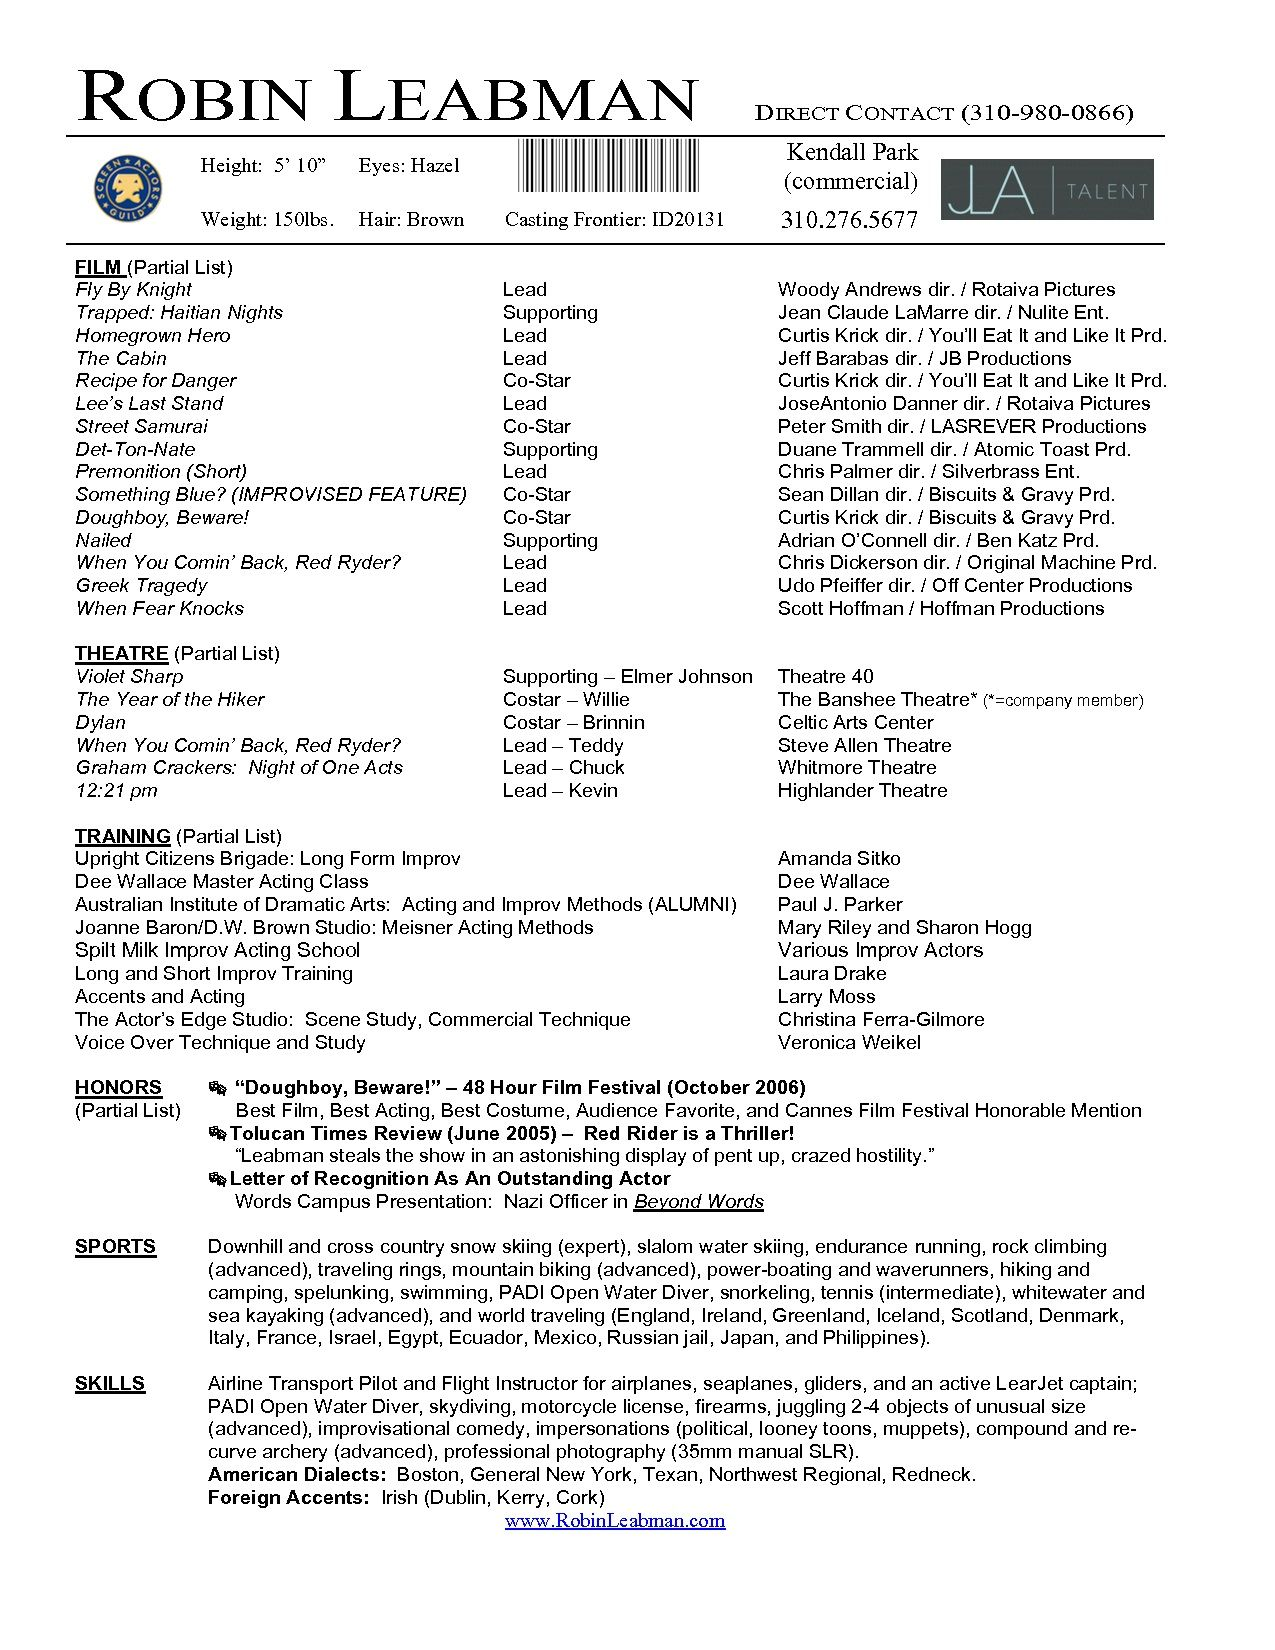 Actor Resume Template Microsoft Word   Http://www.resumecareer.info/  Active Resume Words